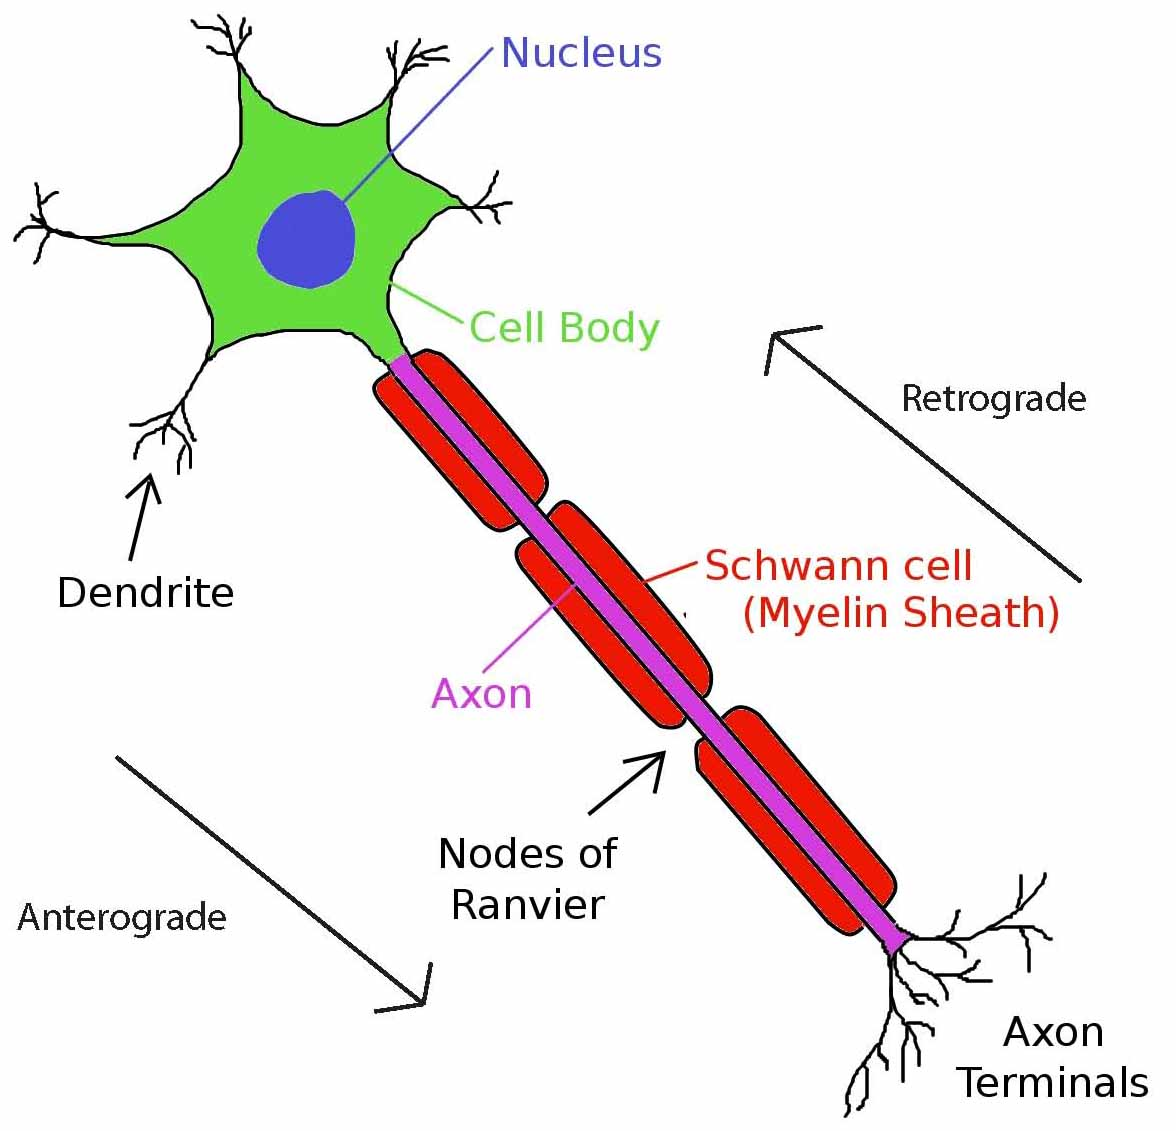 Normal neuron diagram information of wiring diagram rabies doing what it does best the finch and pea rh thefinchandpea com blank neuron diagram basic neuron diagram ccuart Choice Image